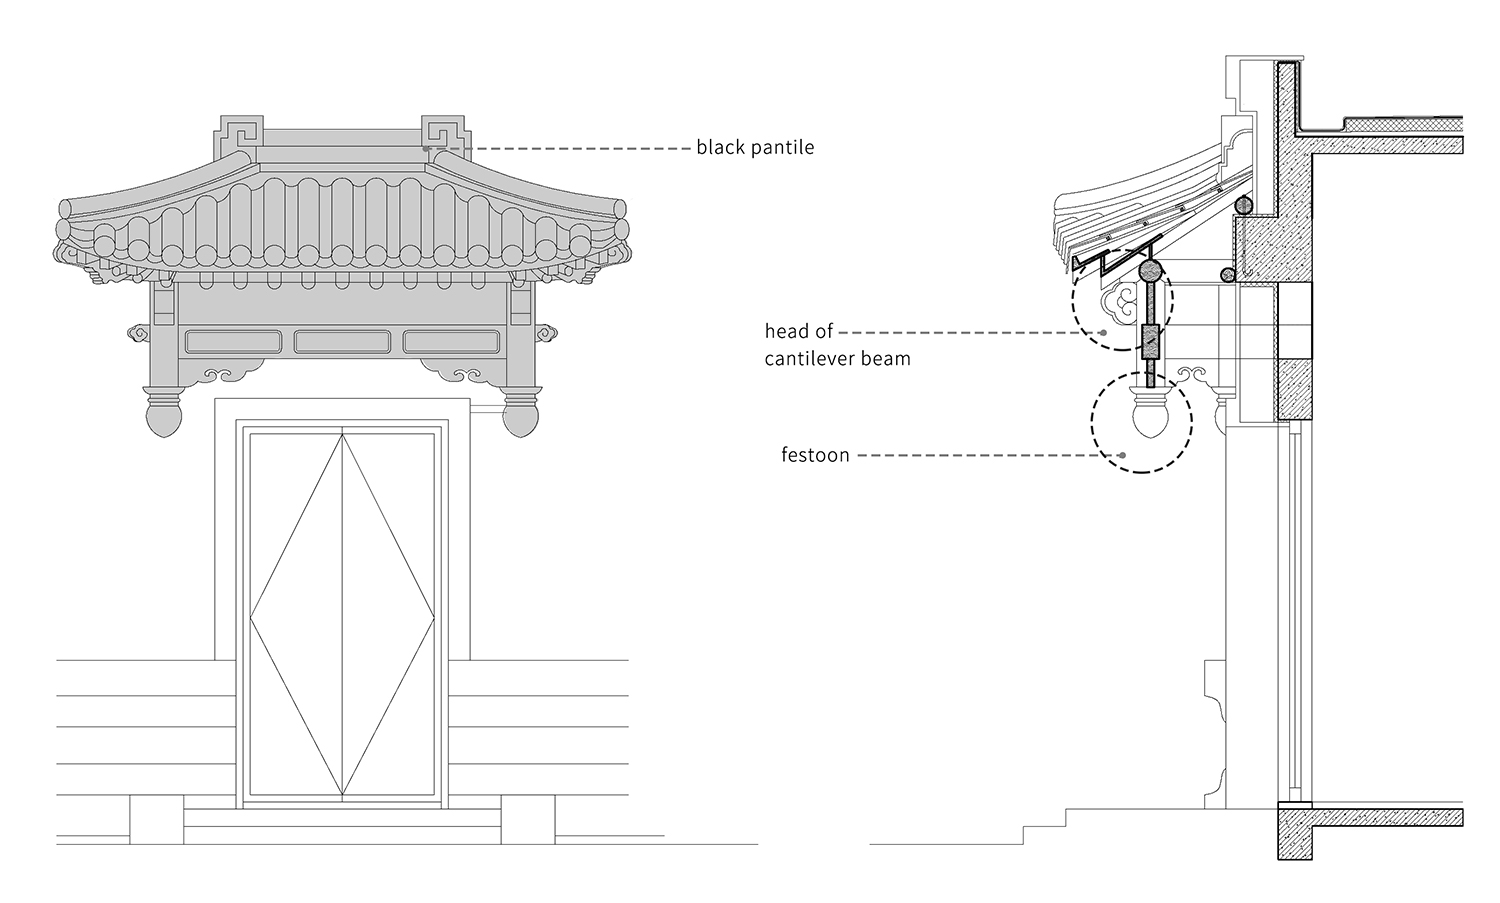 Details of festooned gate The Architectural Design & Research Institute of Zhejiang University}